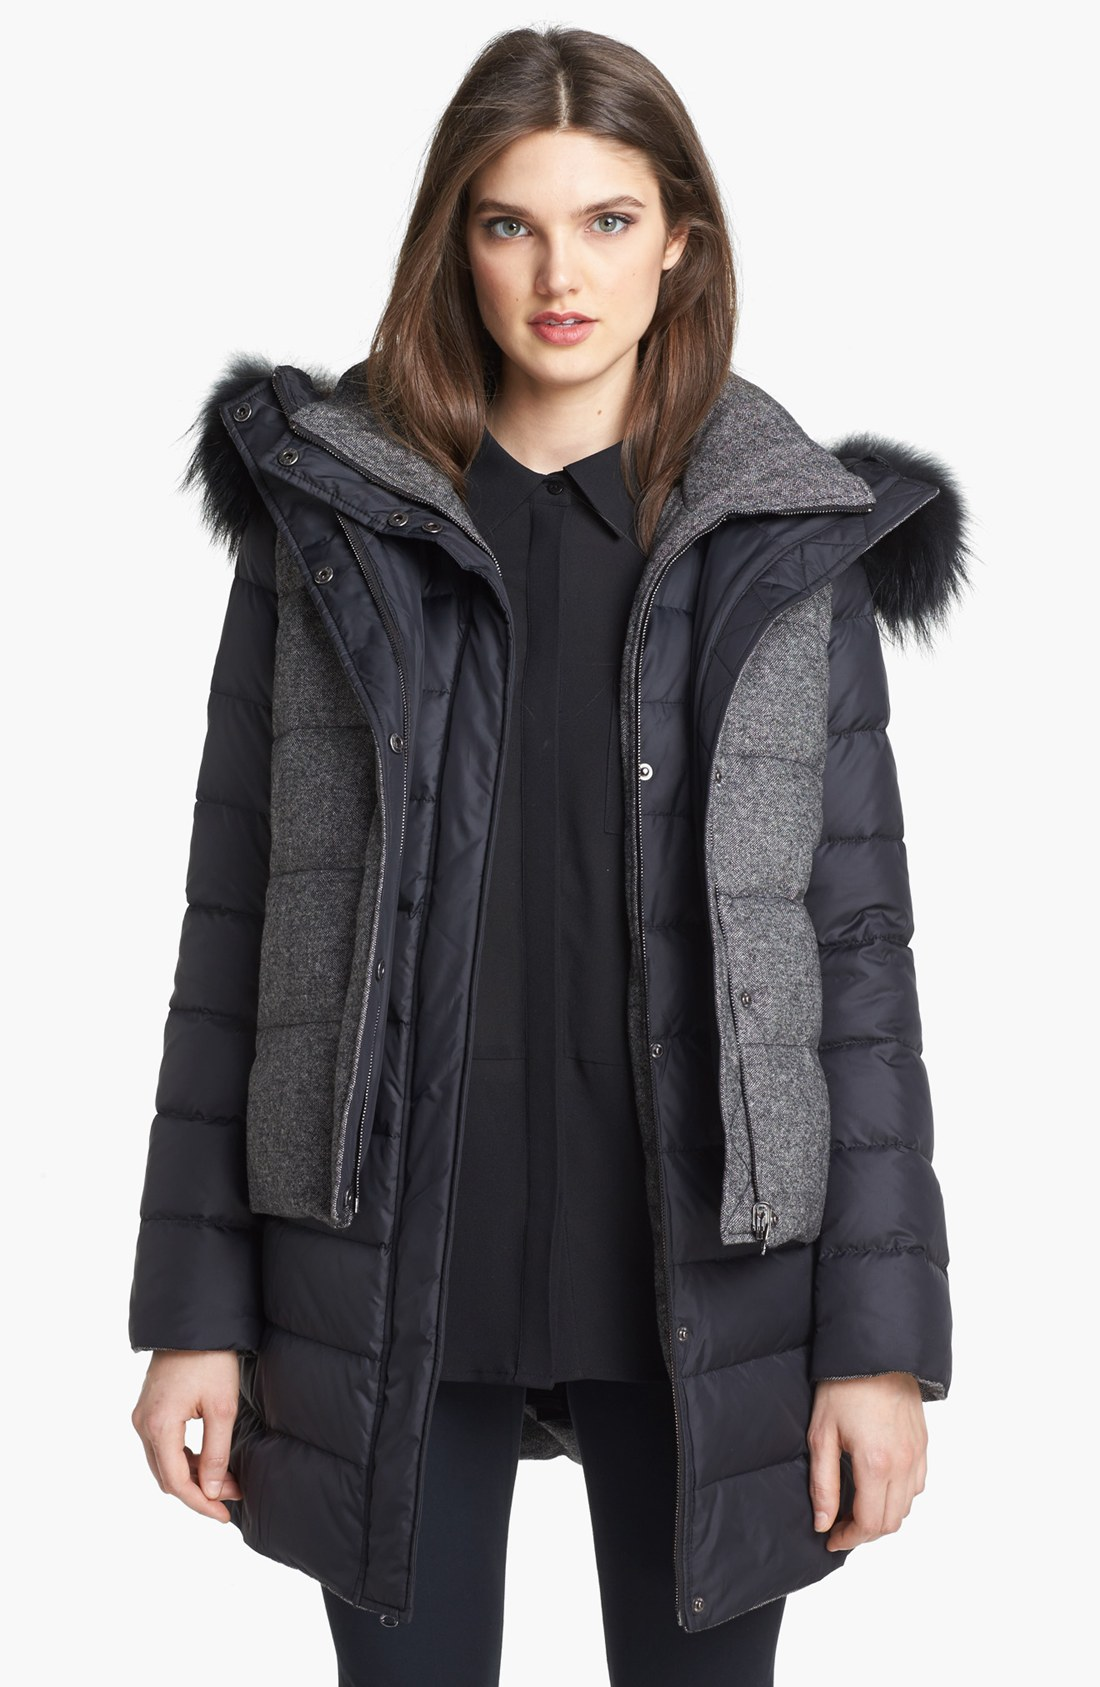 Soia Amp Kyo 6in1 Reversible Quilted Jacket Vest With